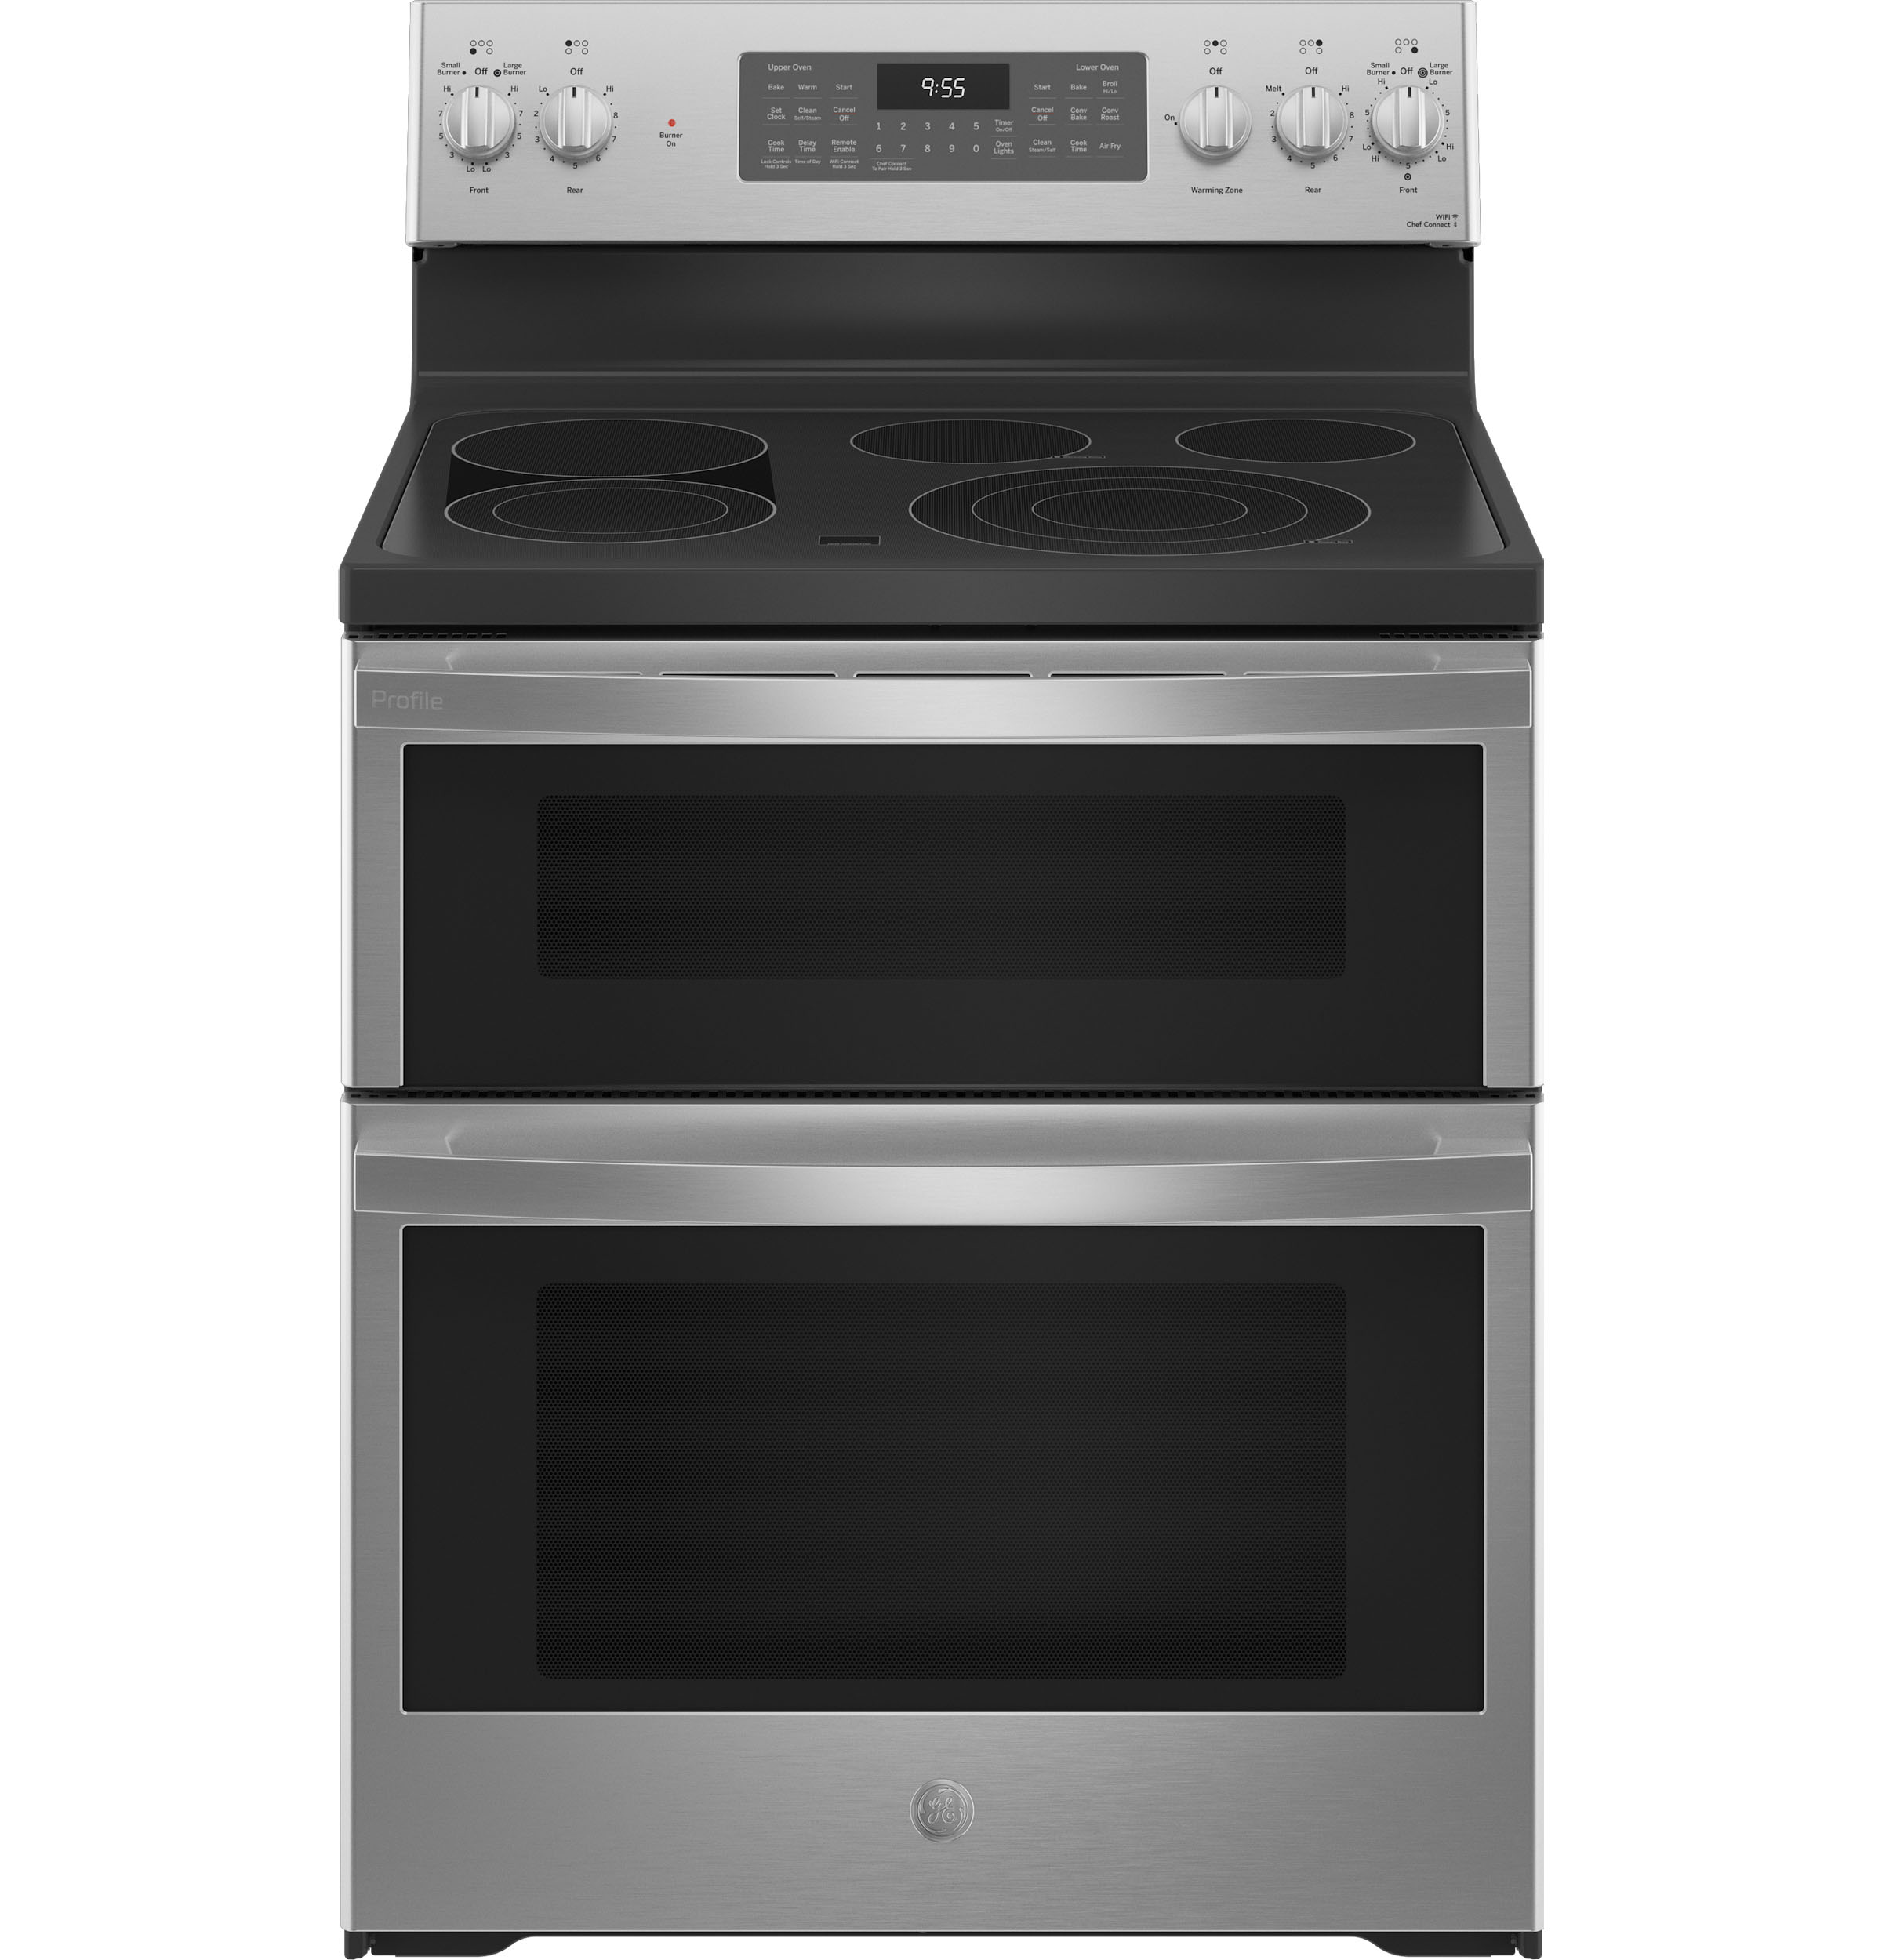 "GE Profile GE Profile™ 30"" Smart Free-Standing Electric Double Oven Convection Range with No Preheat Air Fry"